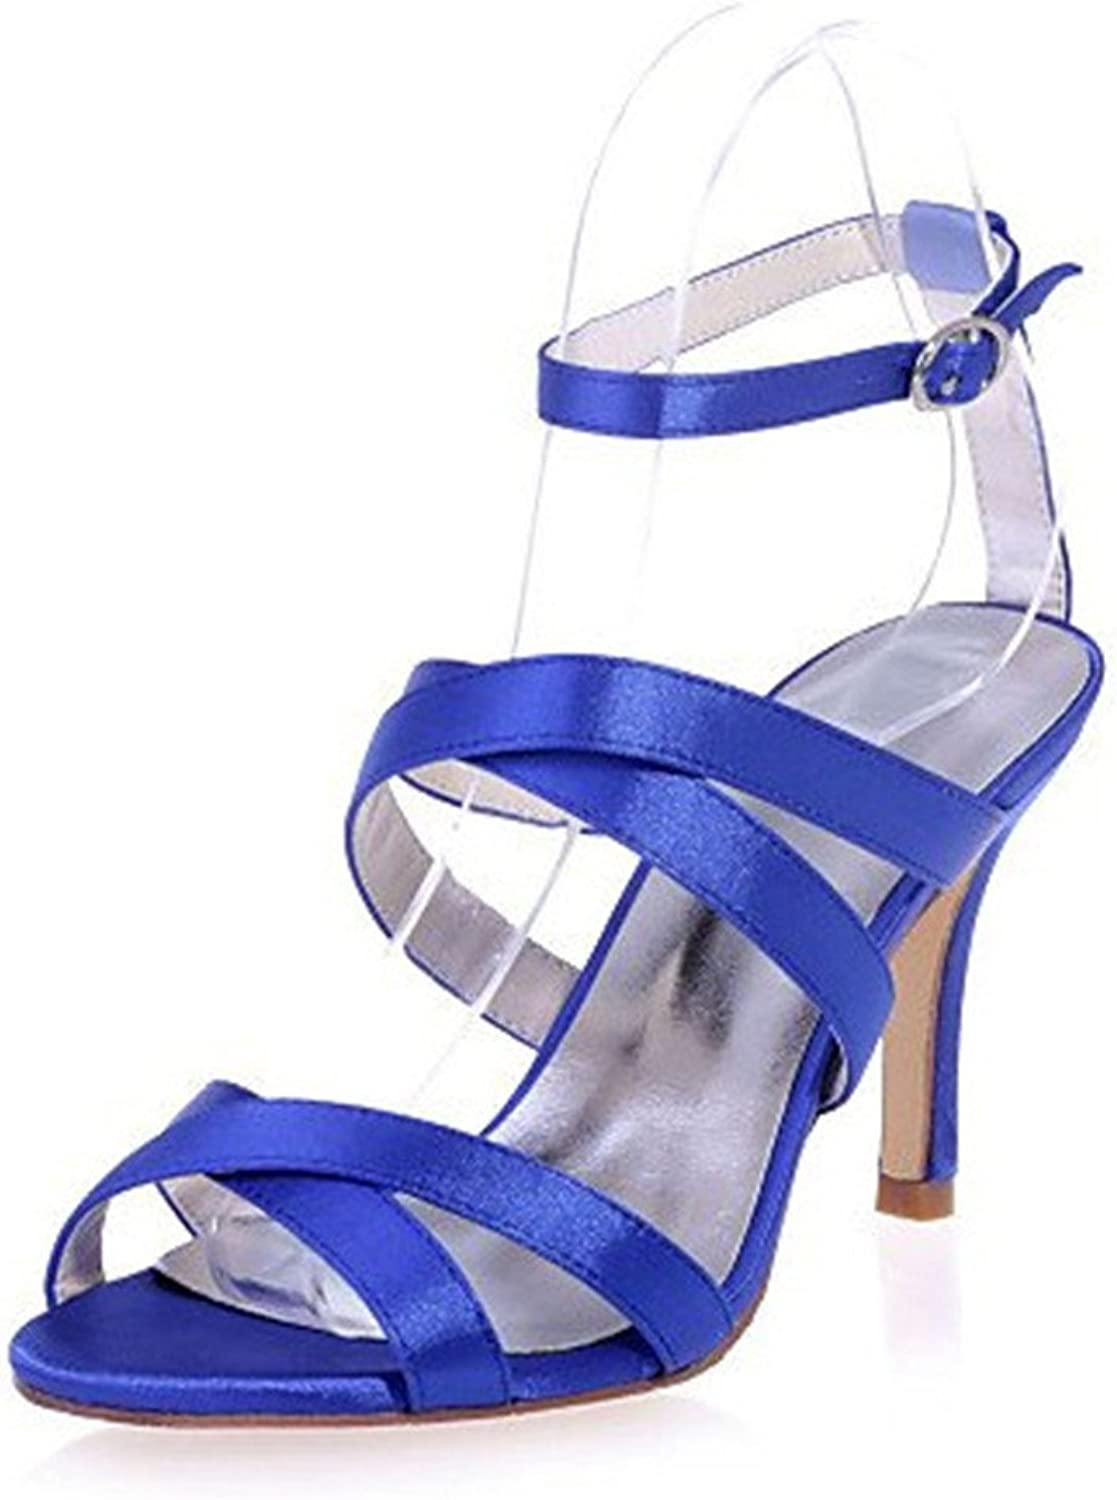 Sandals High Heels Satin Open Toes Stlletto Heel Platform PU Waterproof Wedding Party Dating Office Women Bride Girls Gift bluee,bluee,EU44